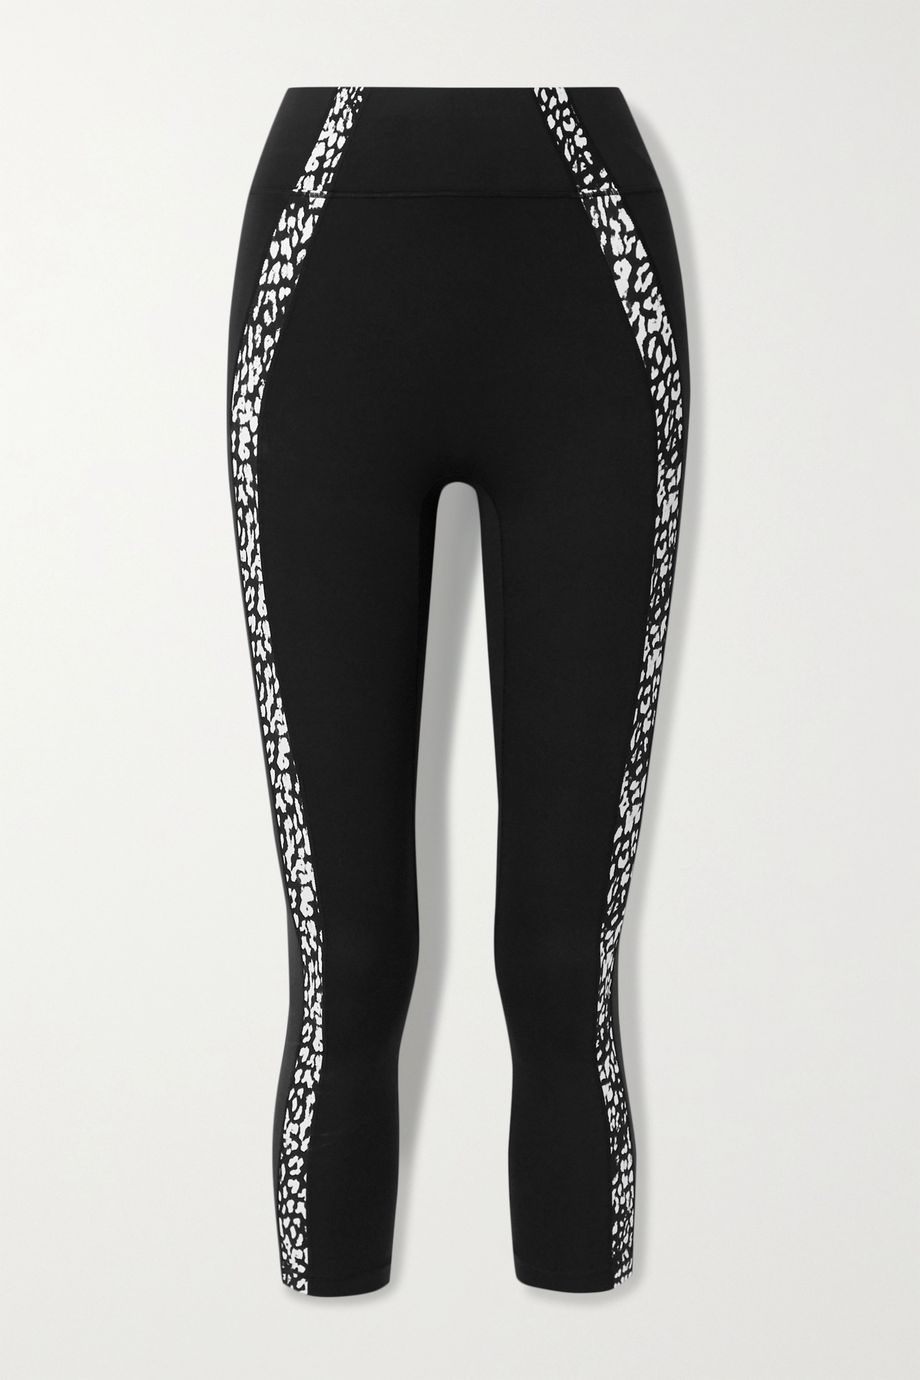 All Access Pace verkürzte Stretch-Leggings